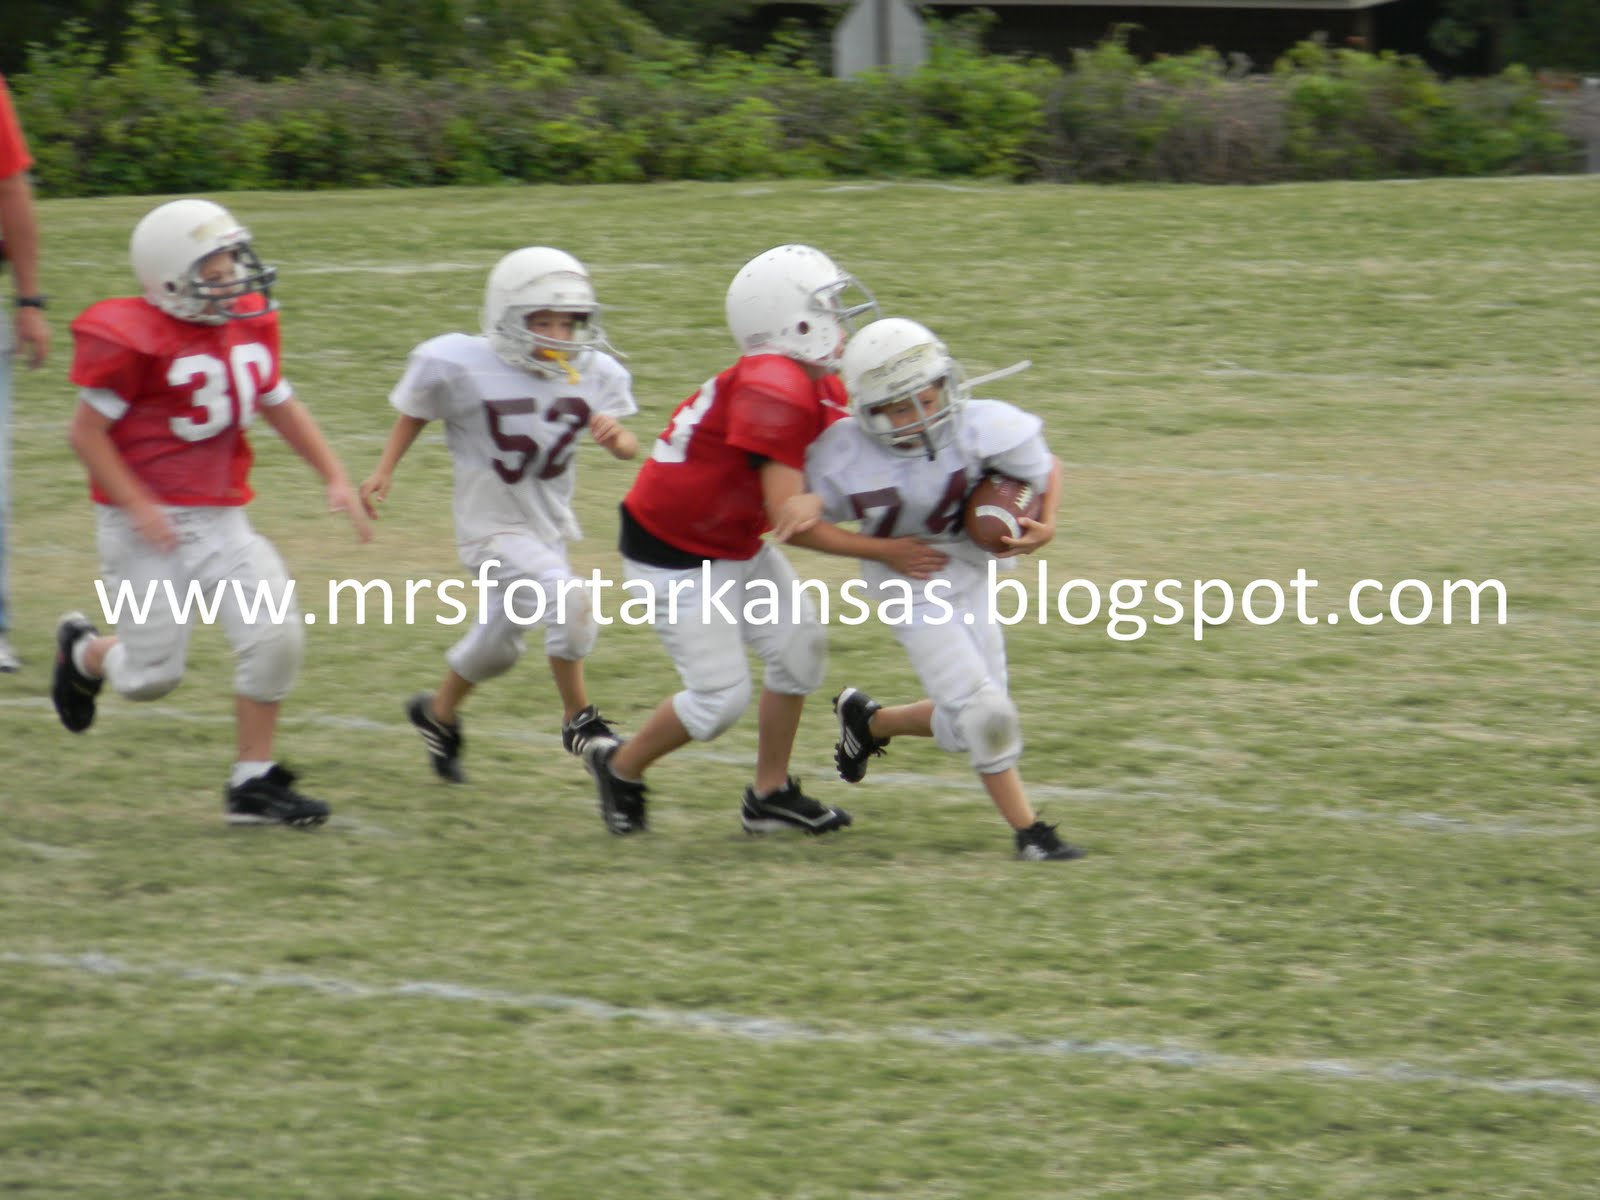 Pee wee football superstar